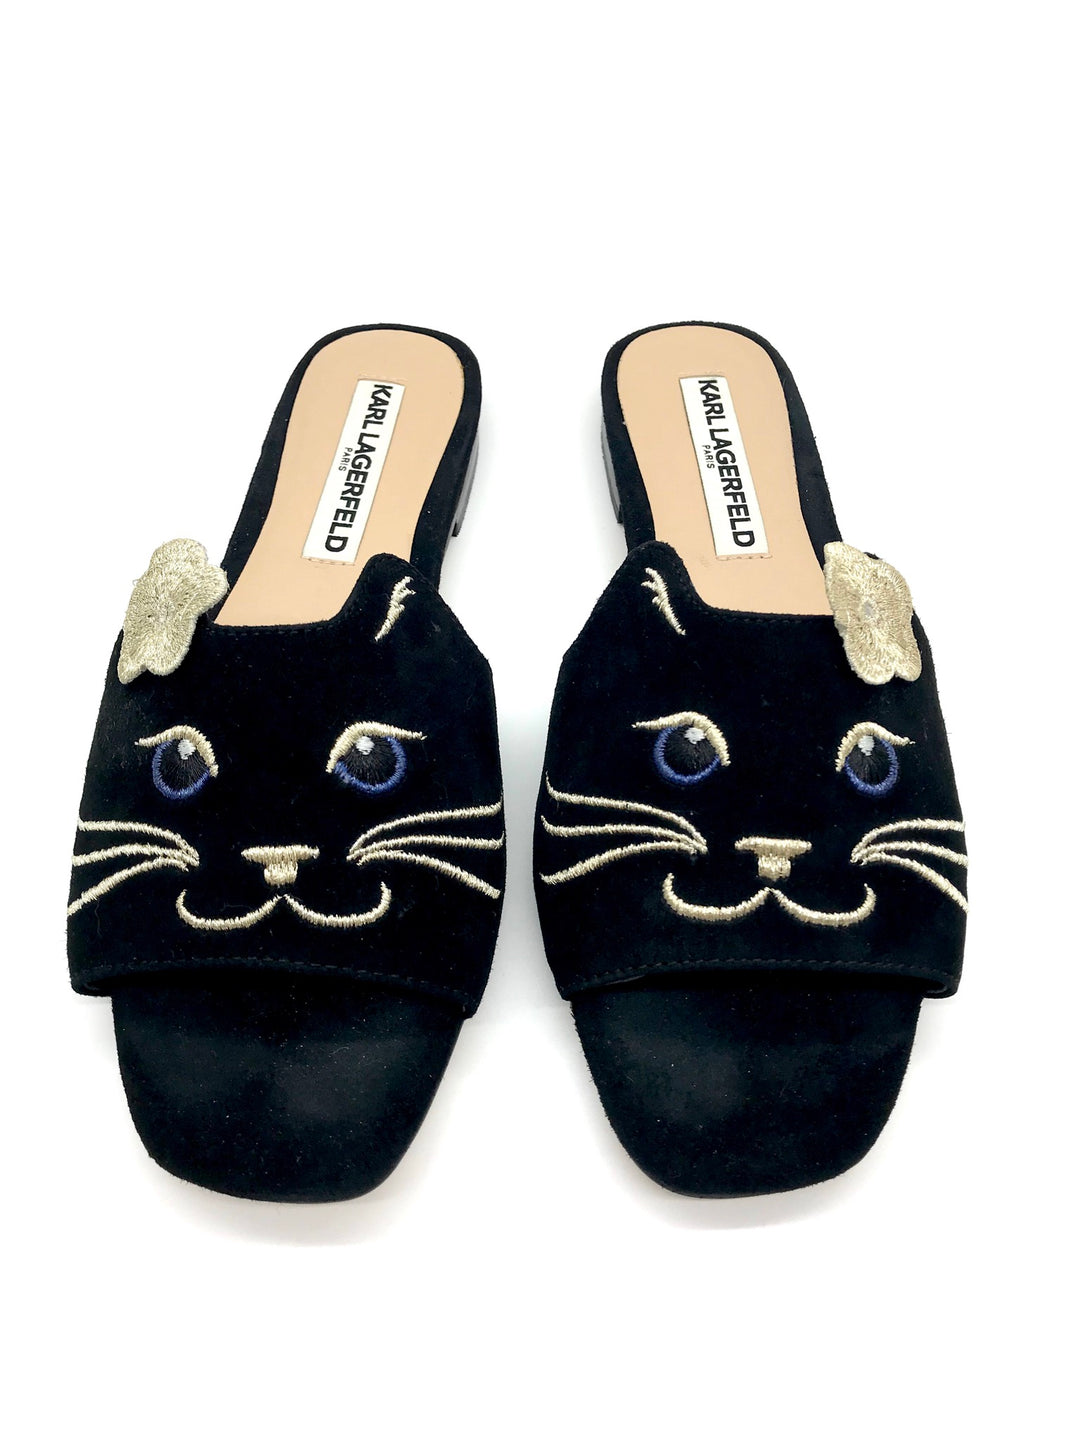 Primary Photo - BRAND: KARL LAGERFELD <BR>STYLE: SANDALS FLAT <BR>COLOR: BLACK <BR>SIZE: 6 <BR>SKU: 262-26275-65272<BR>GENTLE WEAR - AS IS